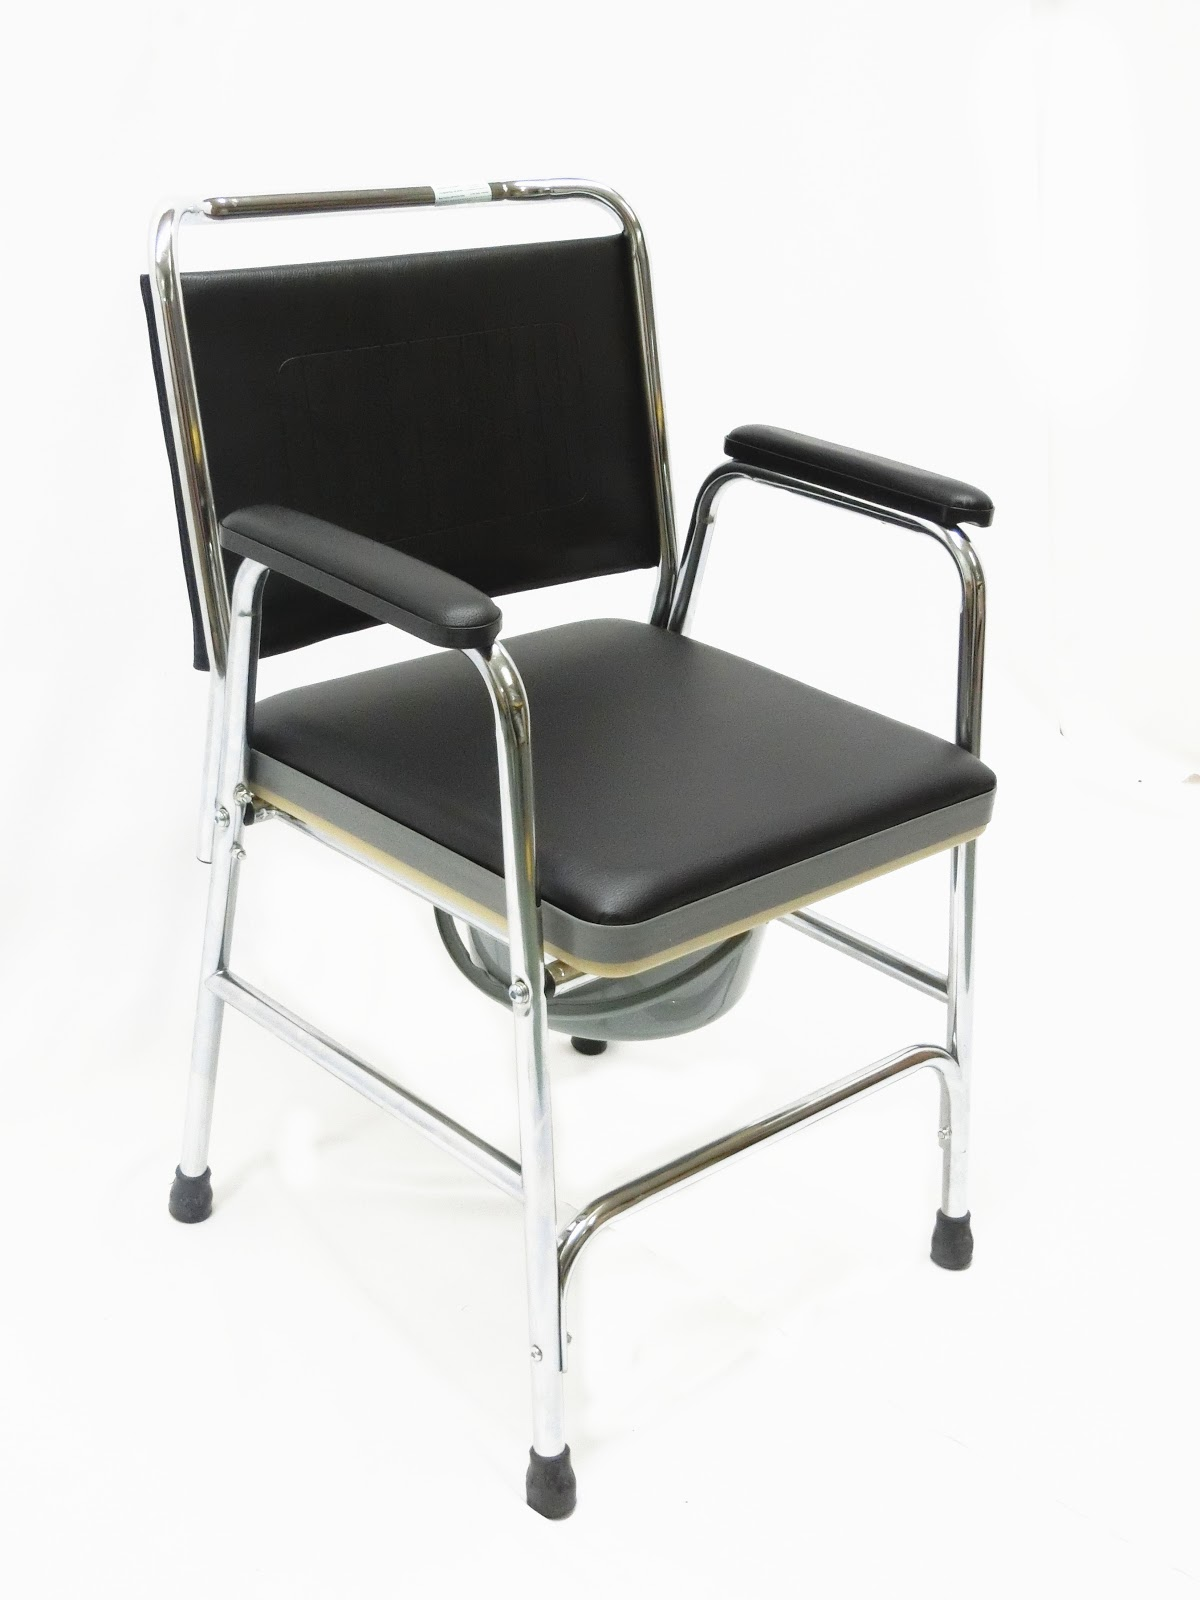 shower chair malaysia transport wheelchair used penang kerusi tandas commode toilet aid